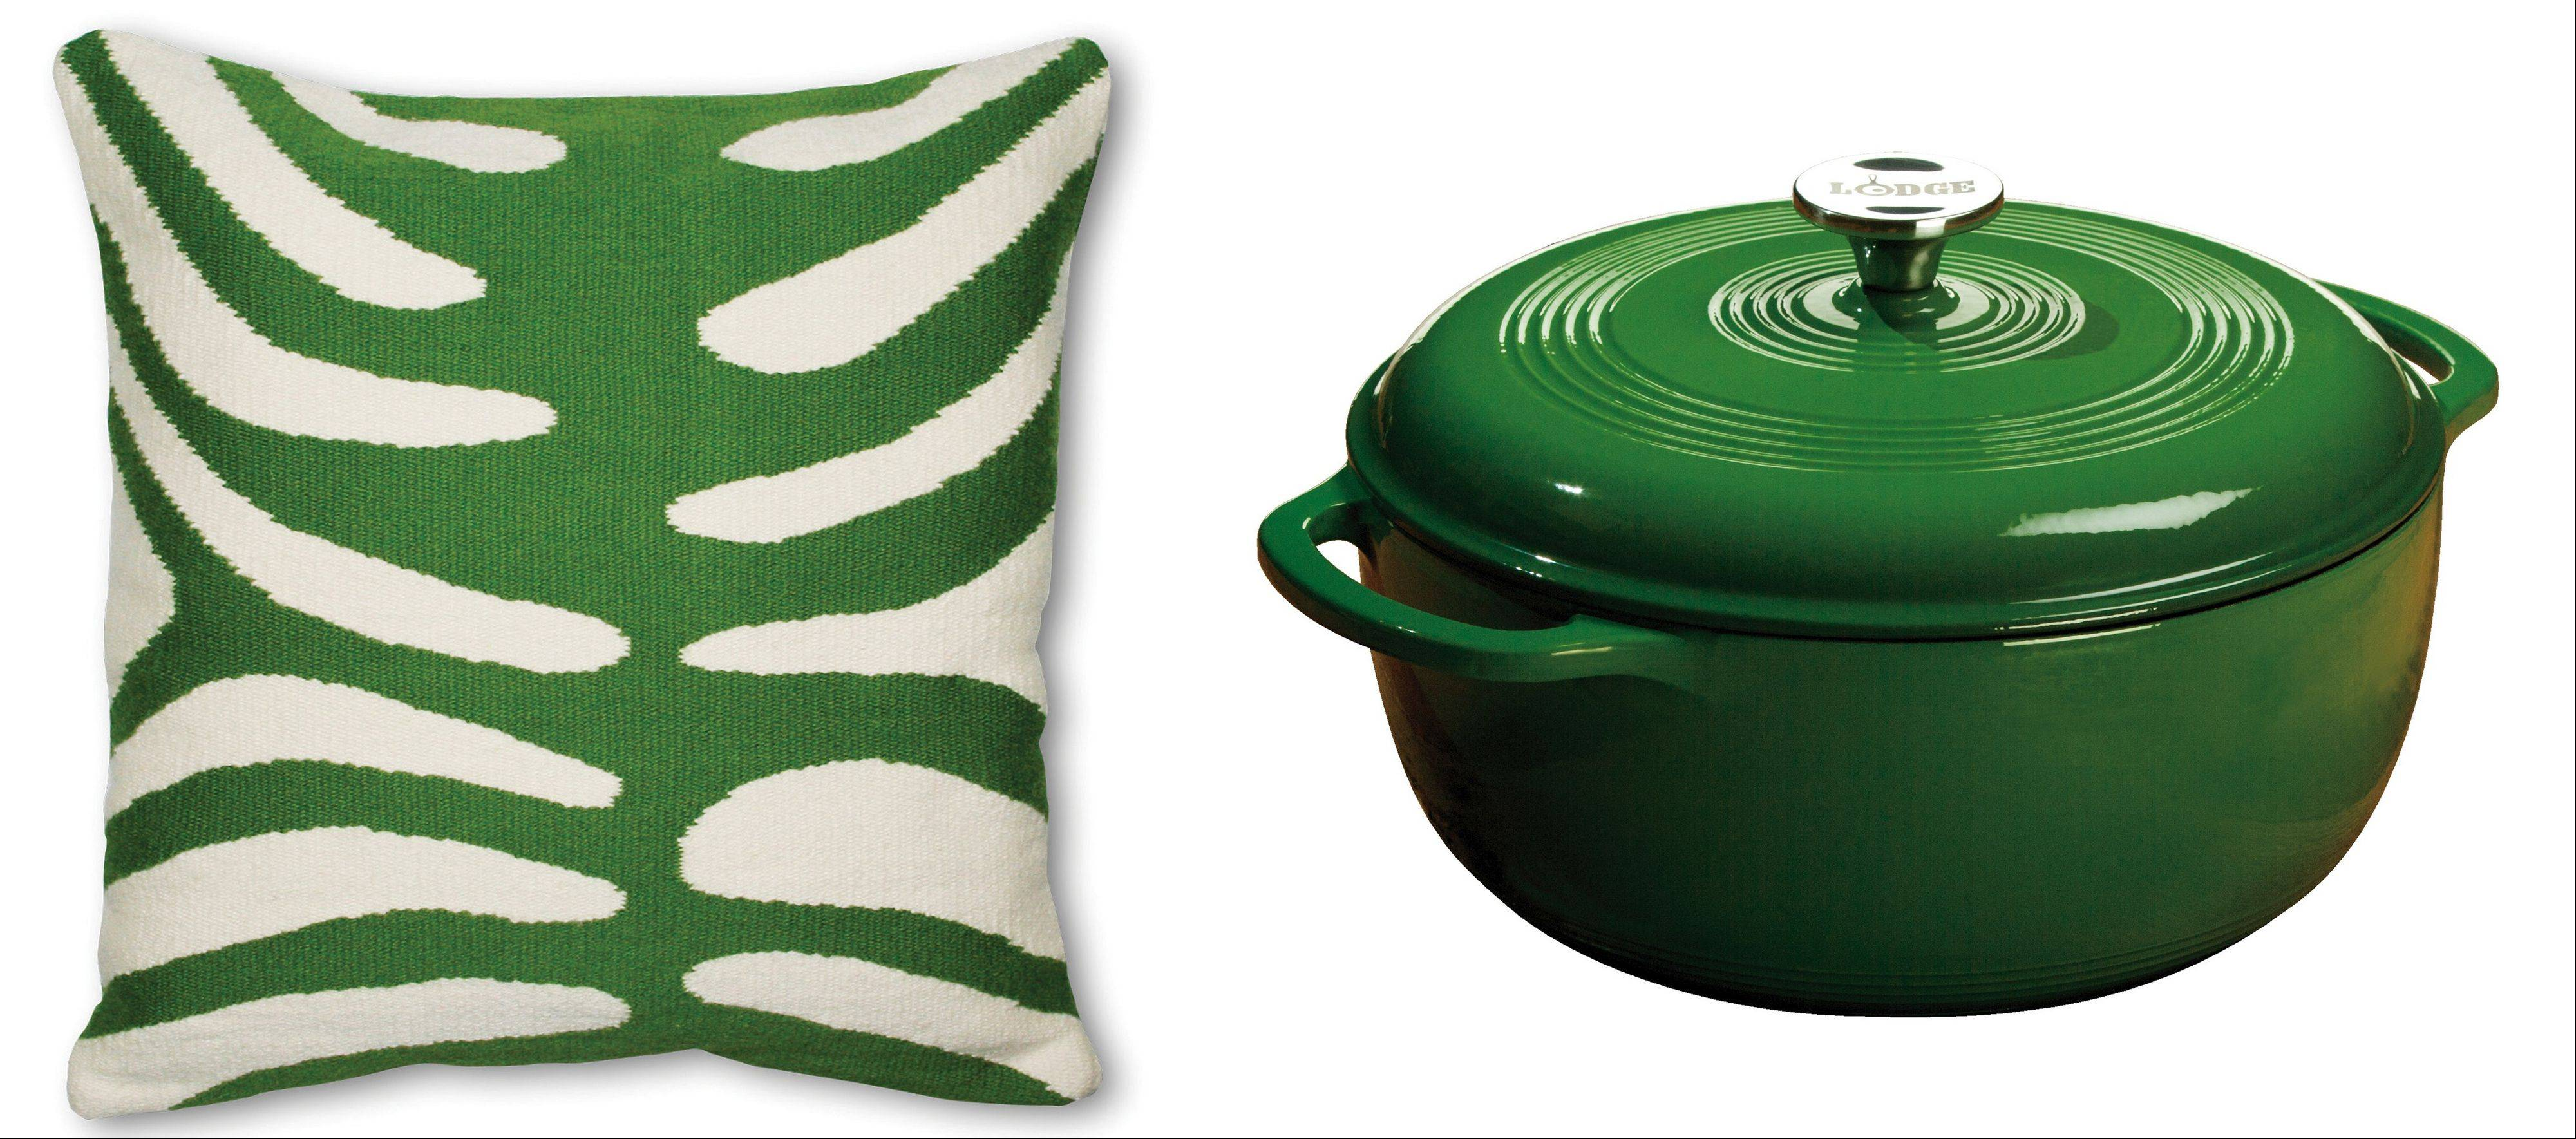 Throw pillows allow homeowners to switch out trends with the season, left; in a neutral room, a bold Dutch oven can declare a kitchen in tune with the trends.